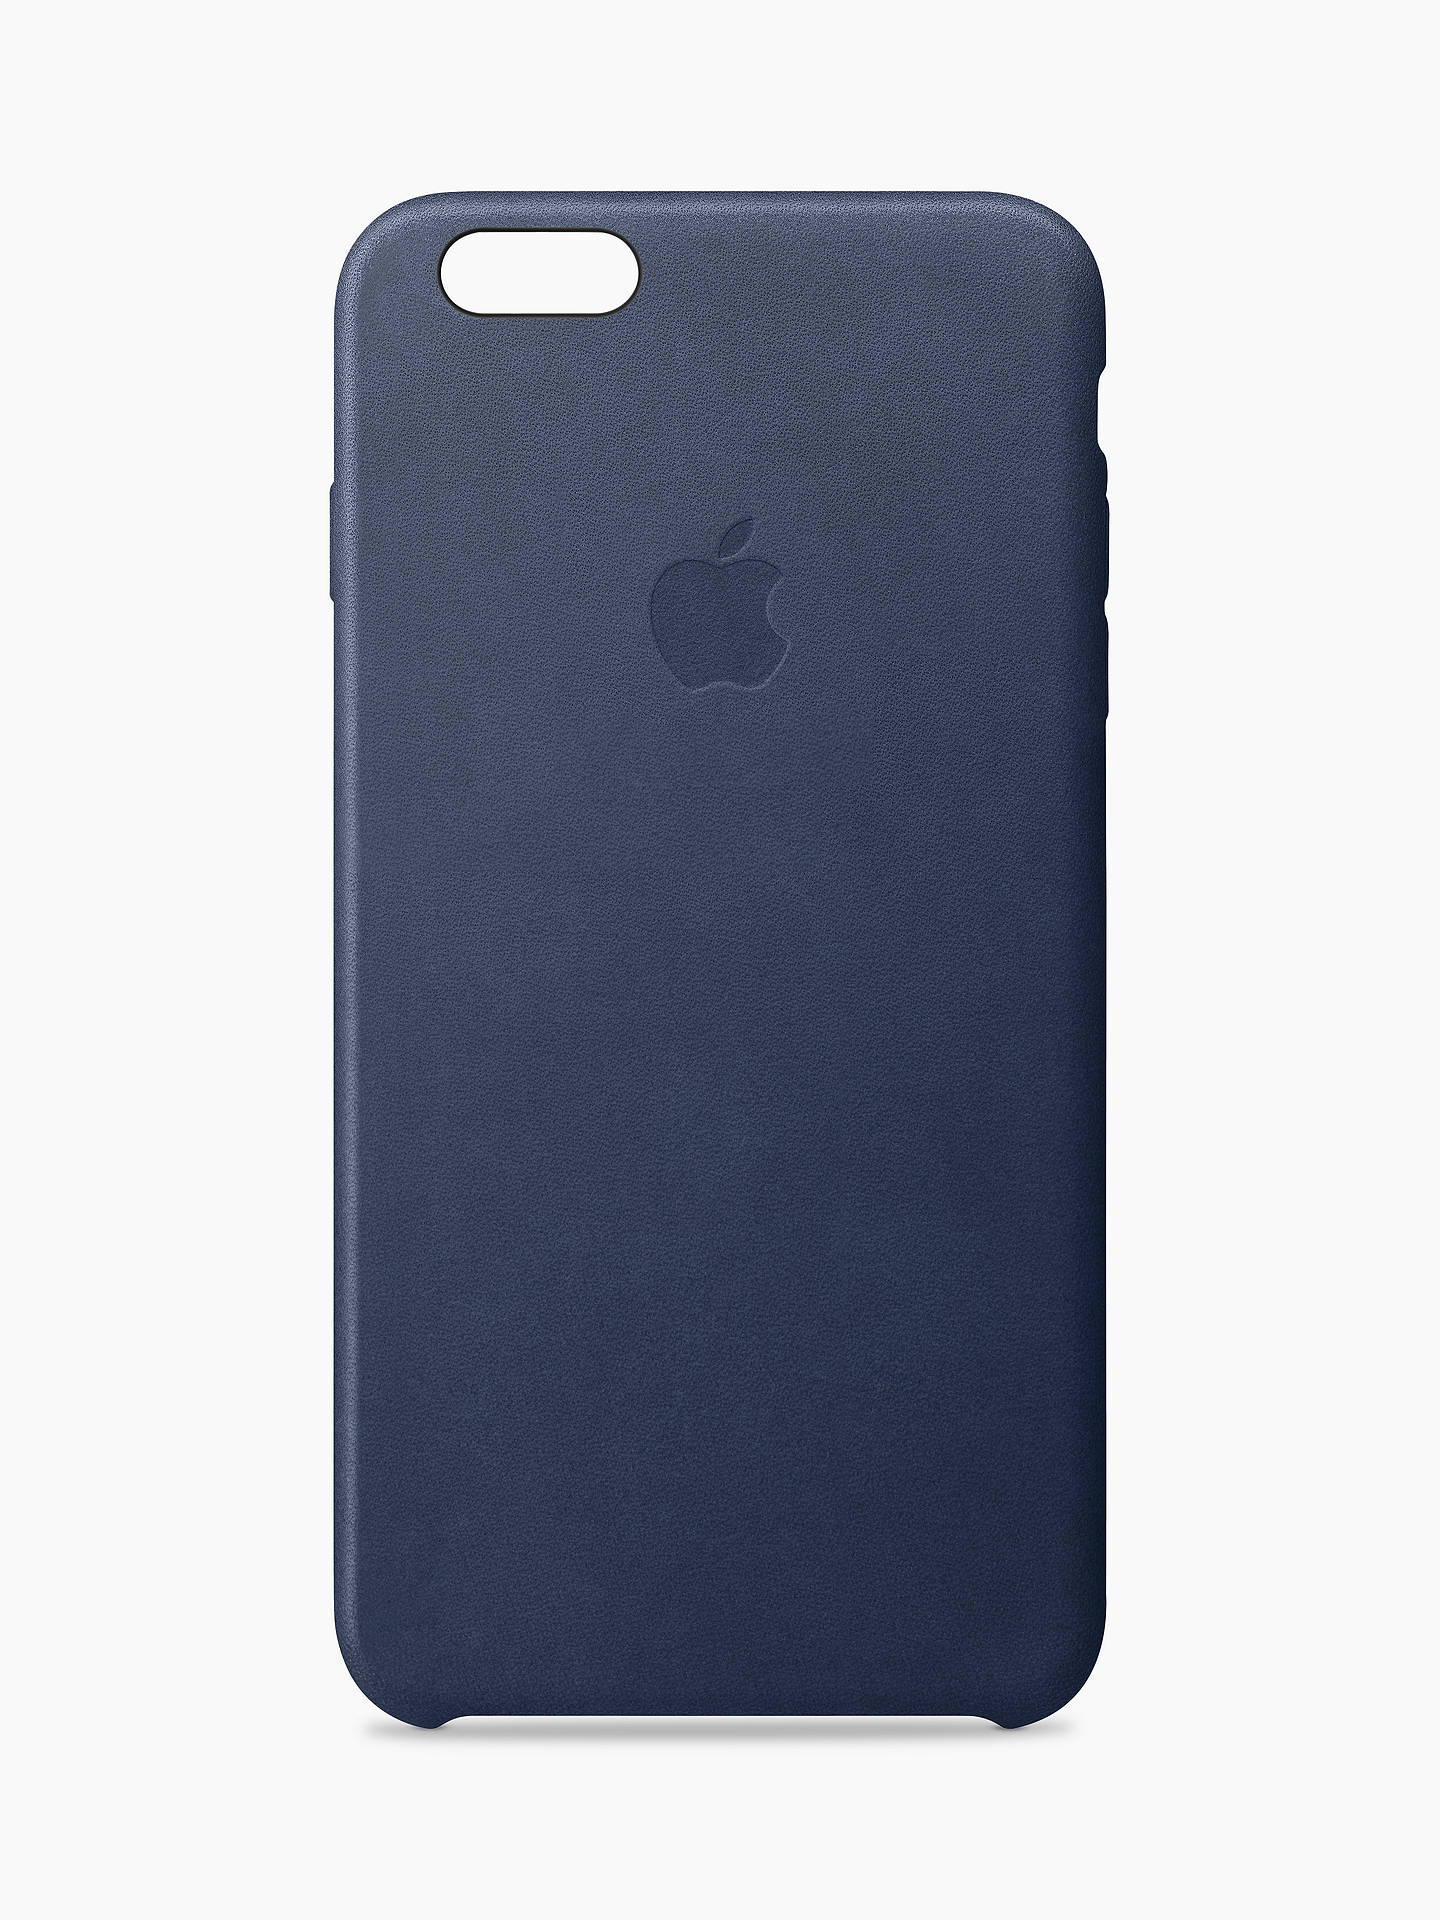 6211b51ed18 Apple Leather Case for iPhone 6 6s at John Lewis   Partners